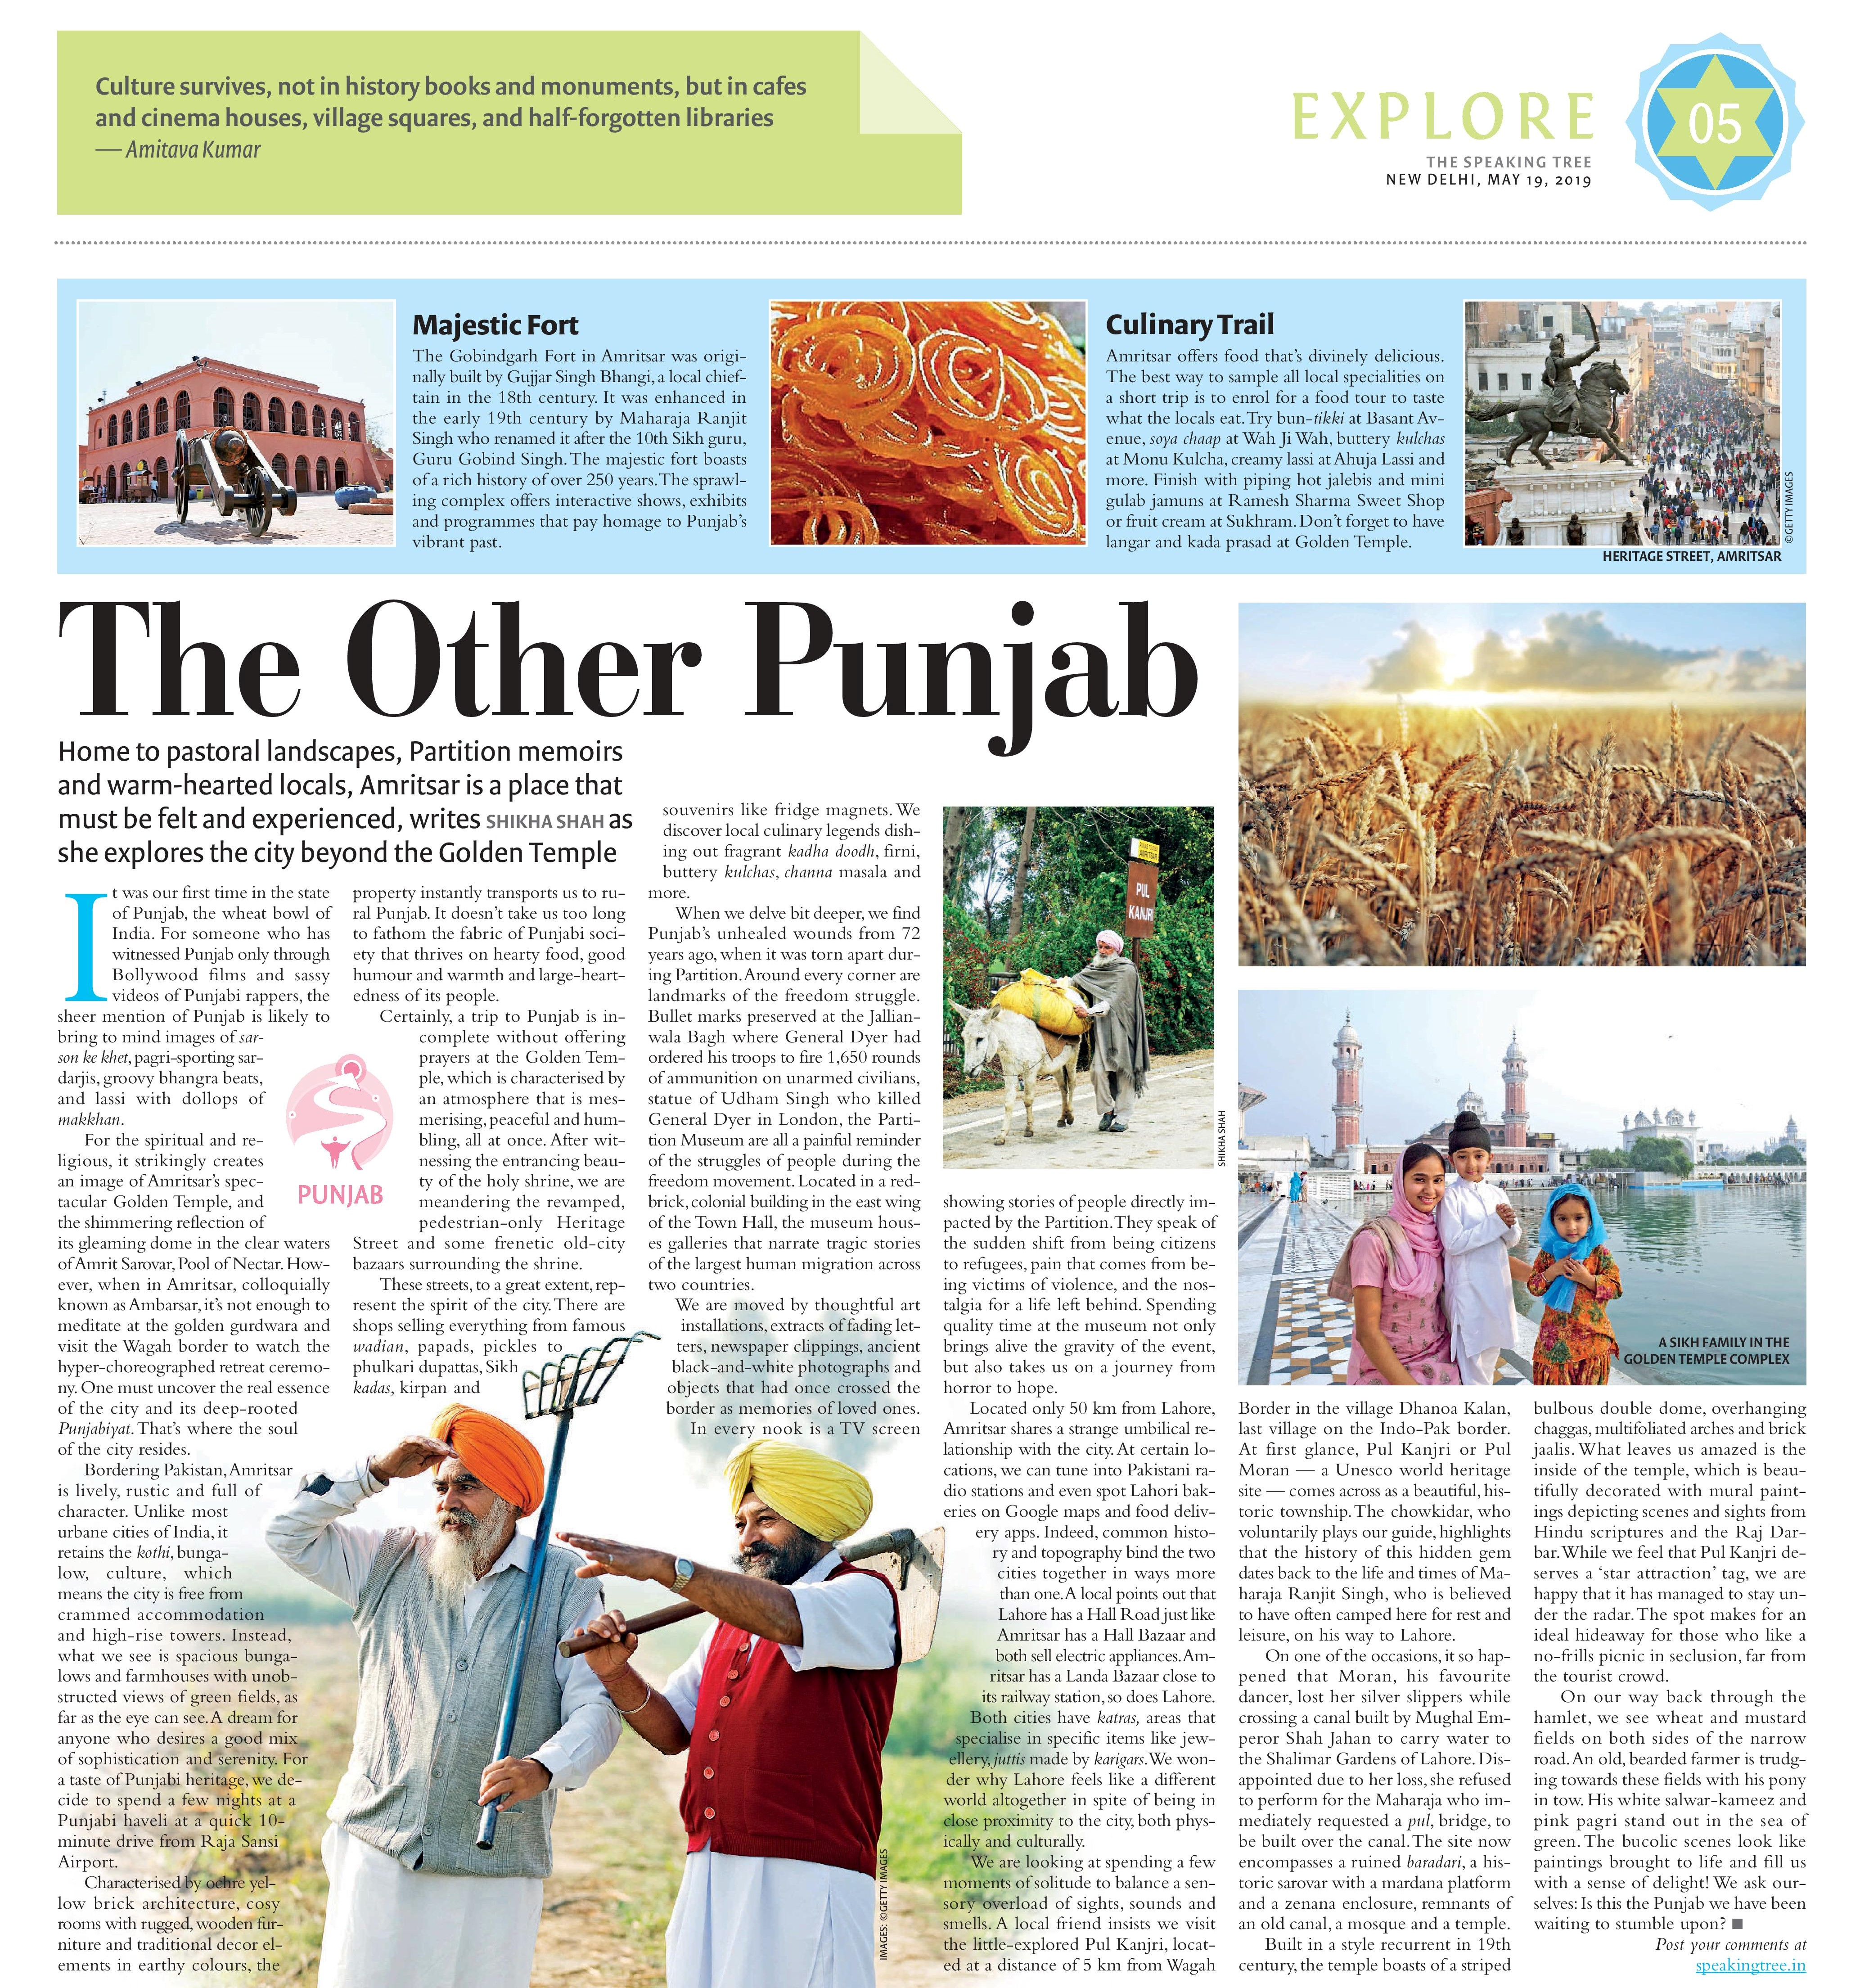 Amritsar travel piece - Speaking Tree - May 19-page-001 (2)